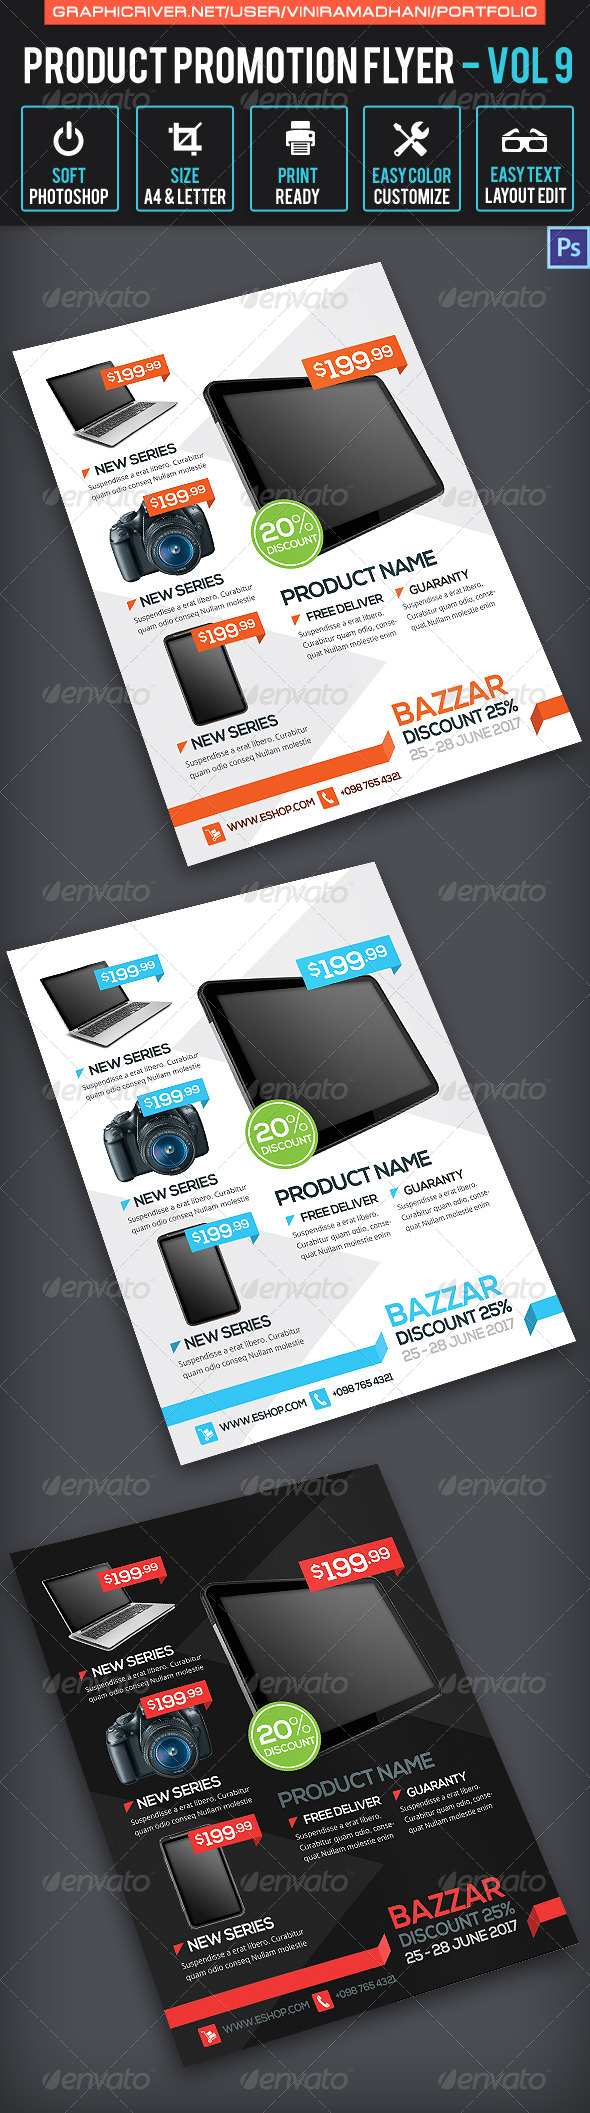 GraphicRiver Product Promotion Flyer Volume 9 7171312